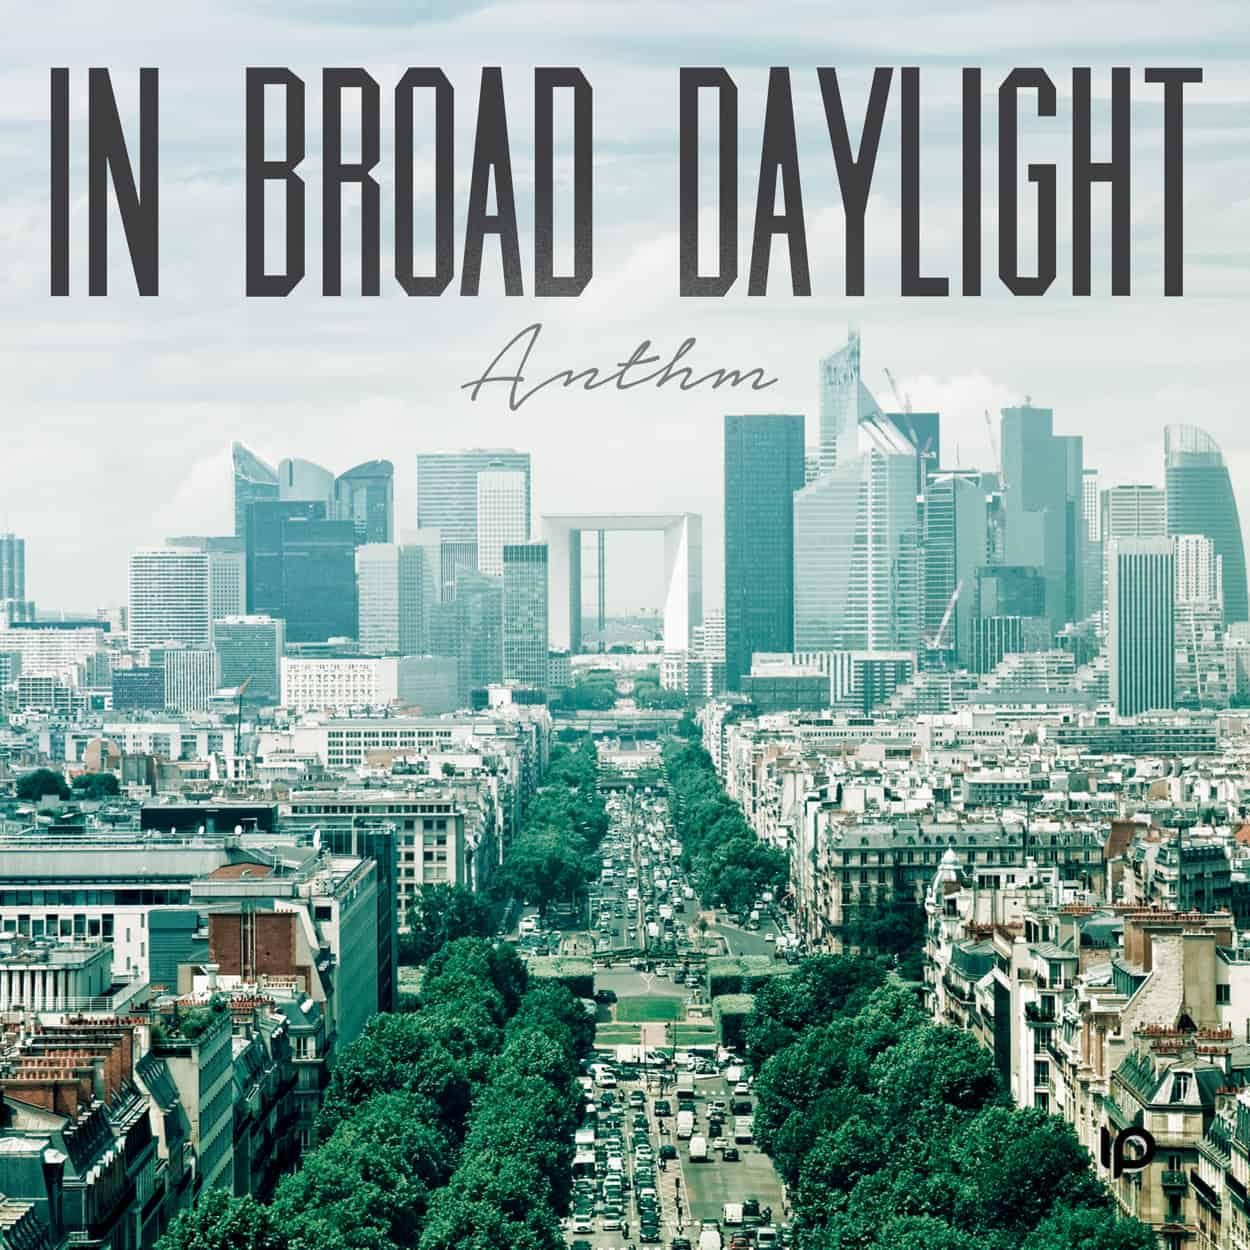 in broad daylight - album art design